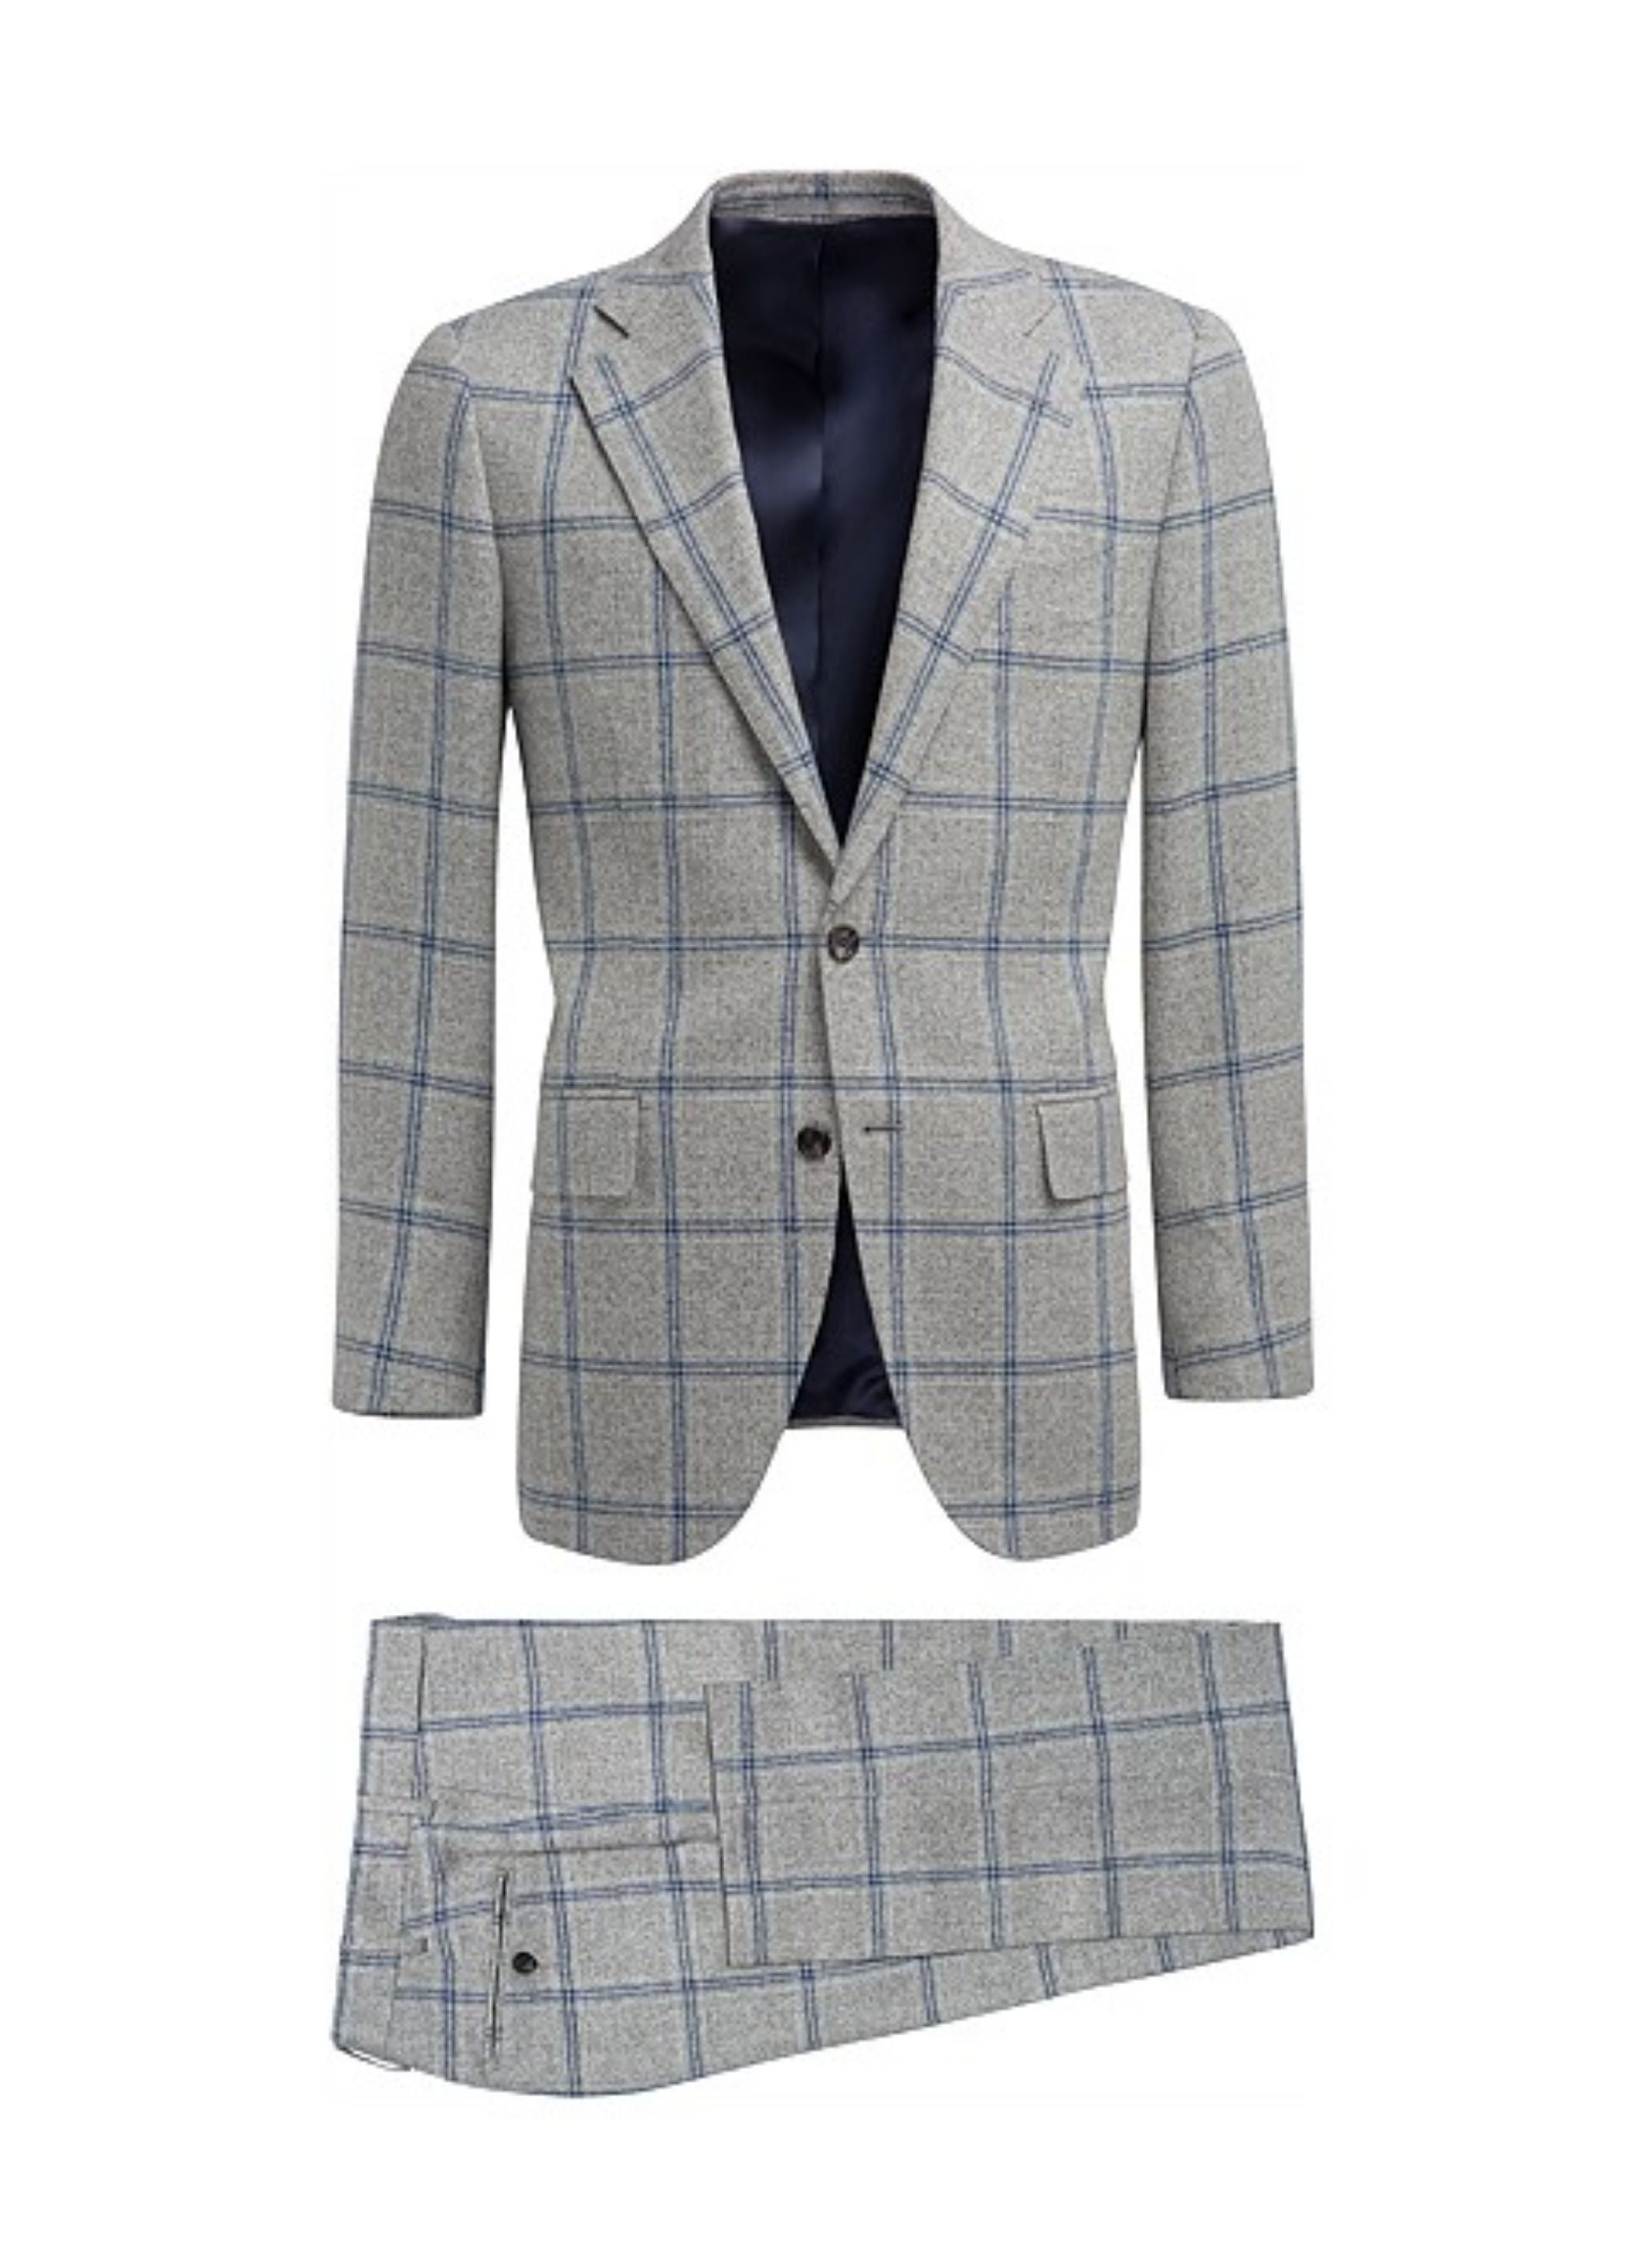 Gray windowpane suit - Suitsupply Lazio fit